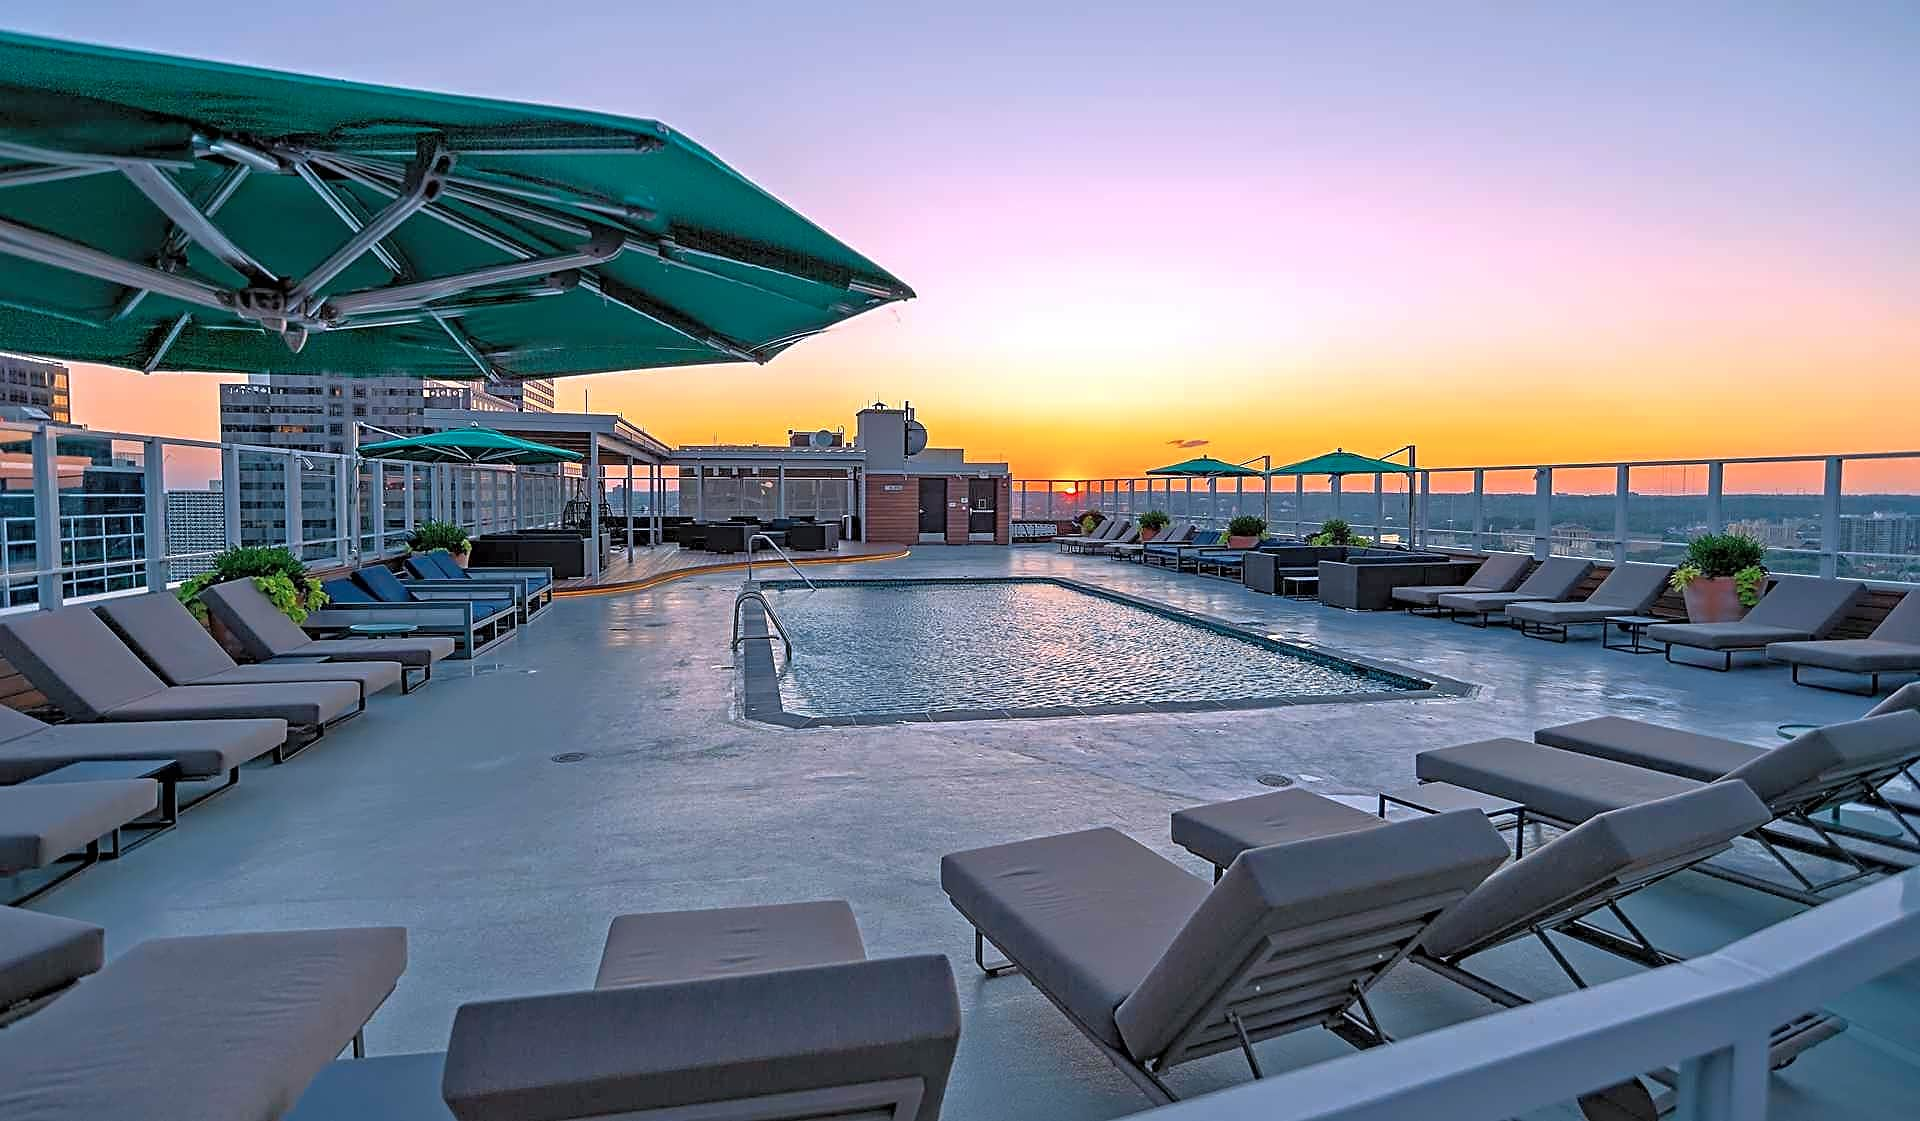 Take a swim in the rooftop pool while taking in the views